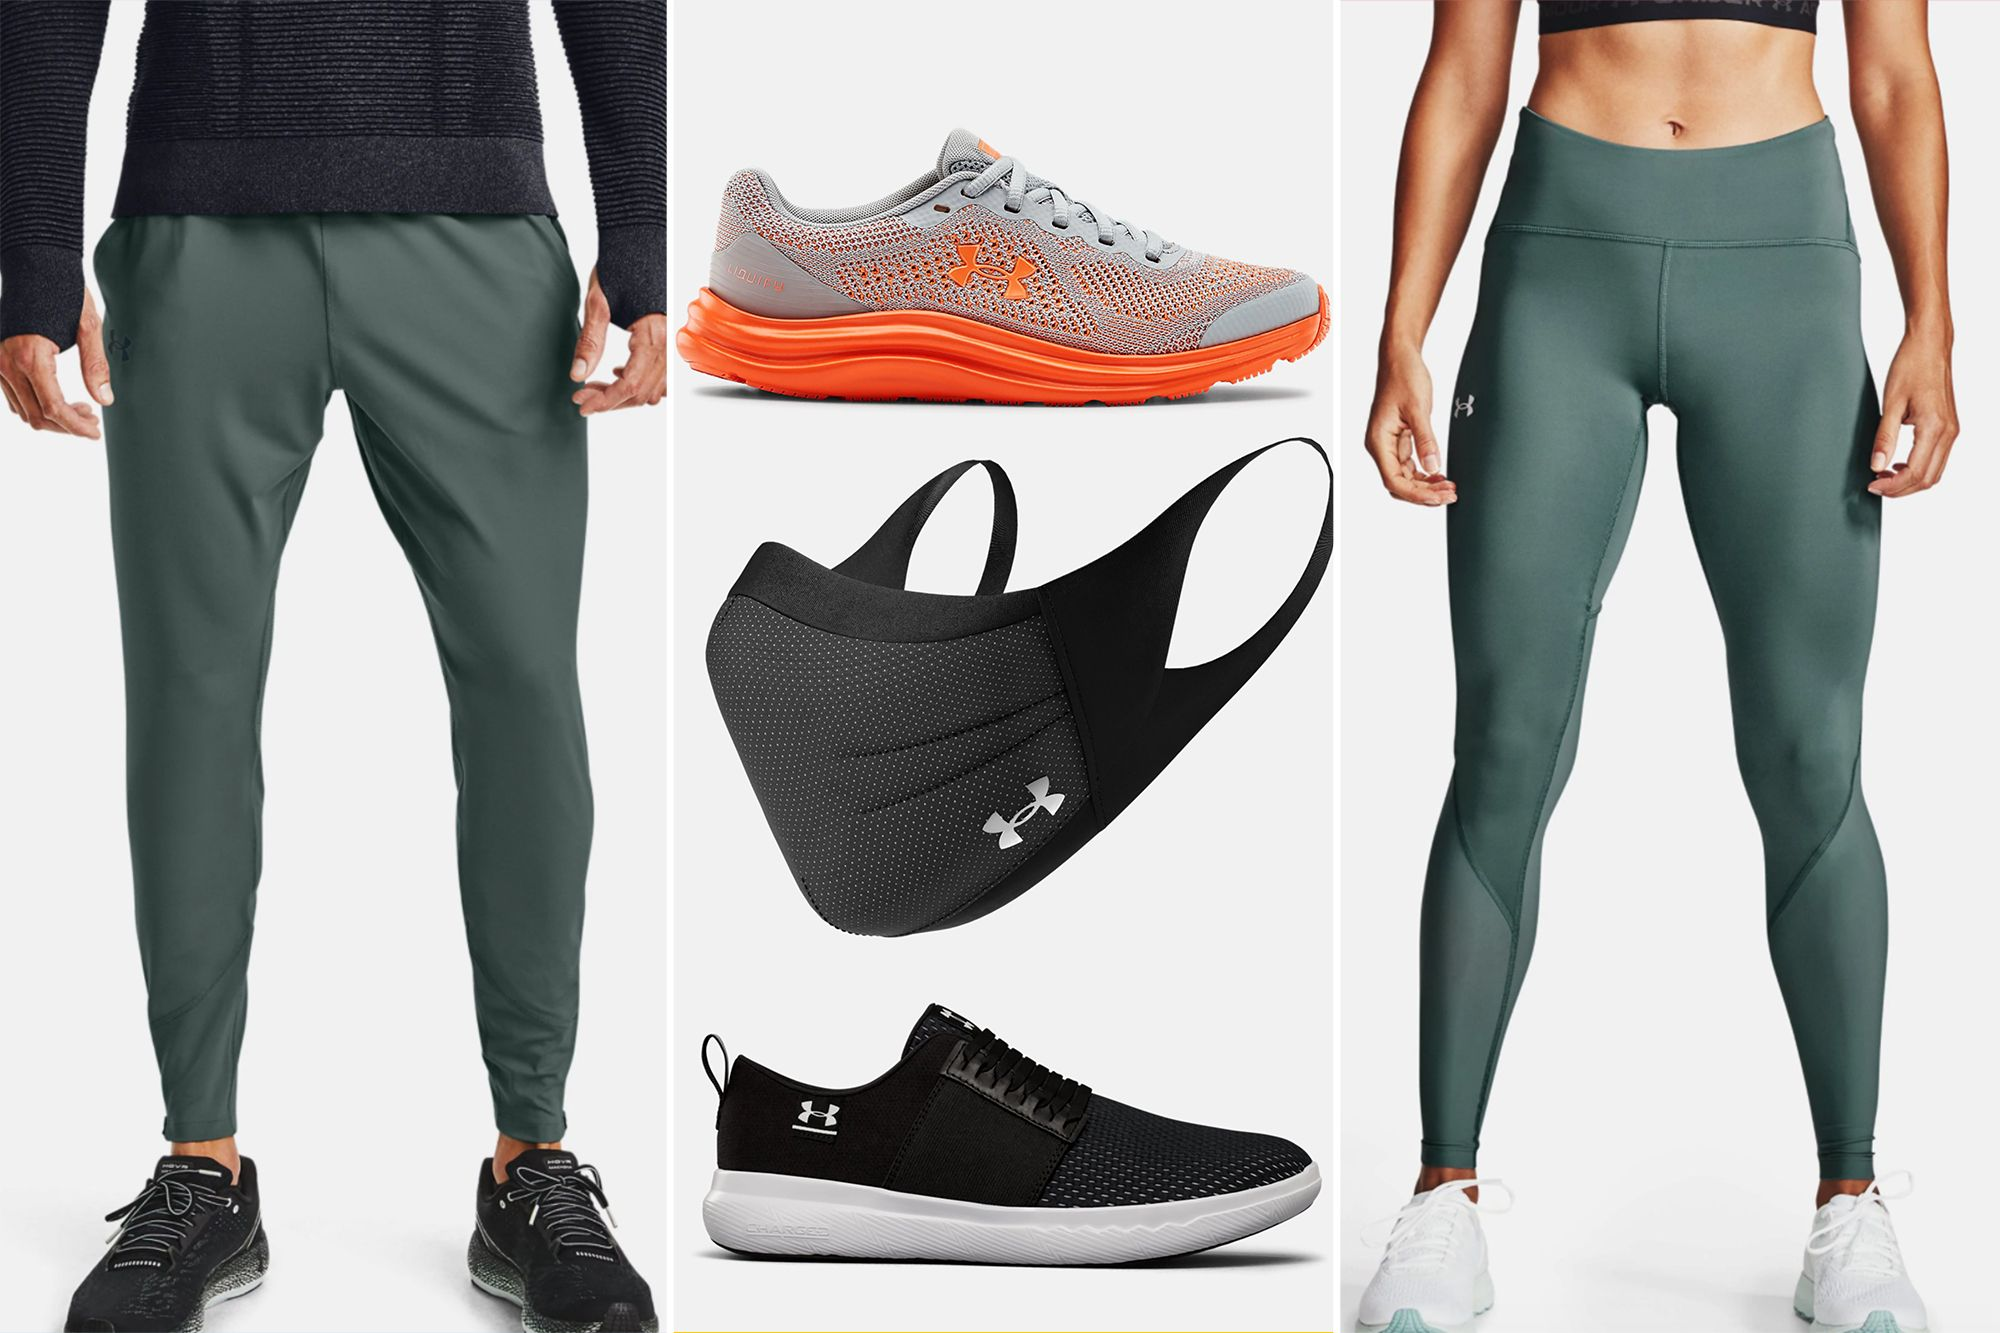 Under Armour: Semi-Annual Outlet Sale Up to 50% off